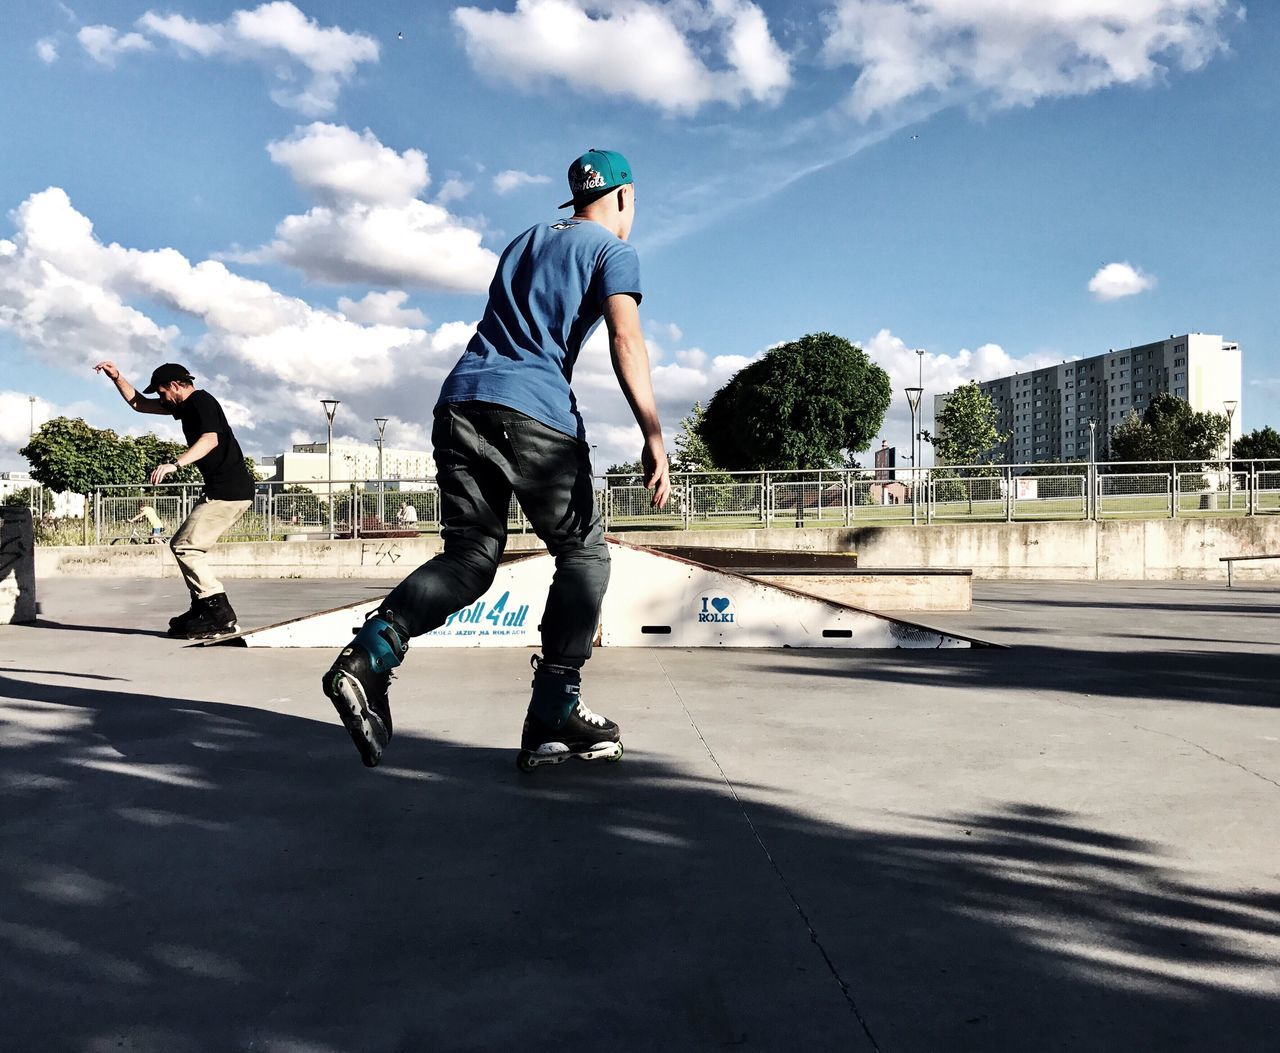 Leisure Activity Skill  Real People Skateboard Sport Full Length Skateboard Park Motion Lifestyles Sunlight Sports Ramp Sky Day Men Jumping Mid-air Vitality Outdoors Stunt Playing Shotoniphone7plus EyeEm Selects